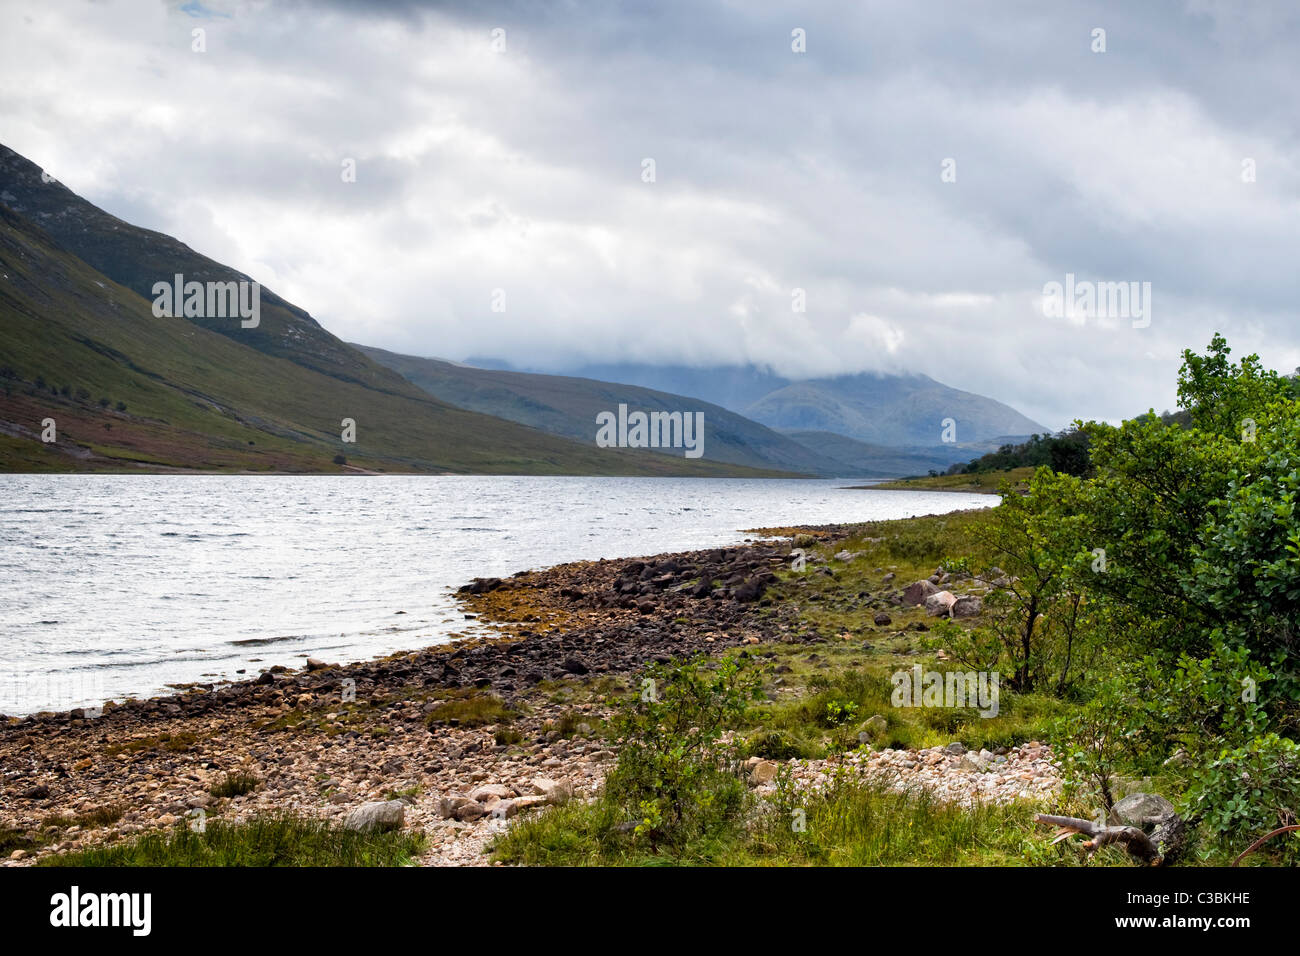 Loch Etive at Glen Etive, Glencoe region, Scotland with cloudy sky taken early autumn - Stock Image